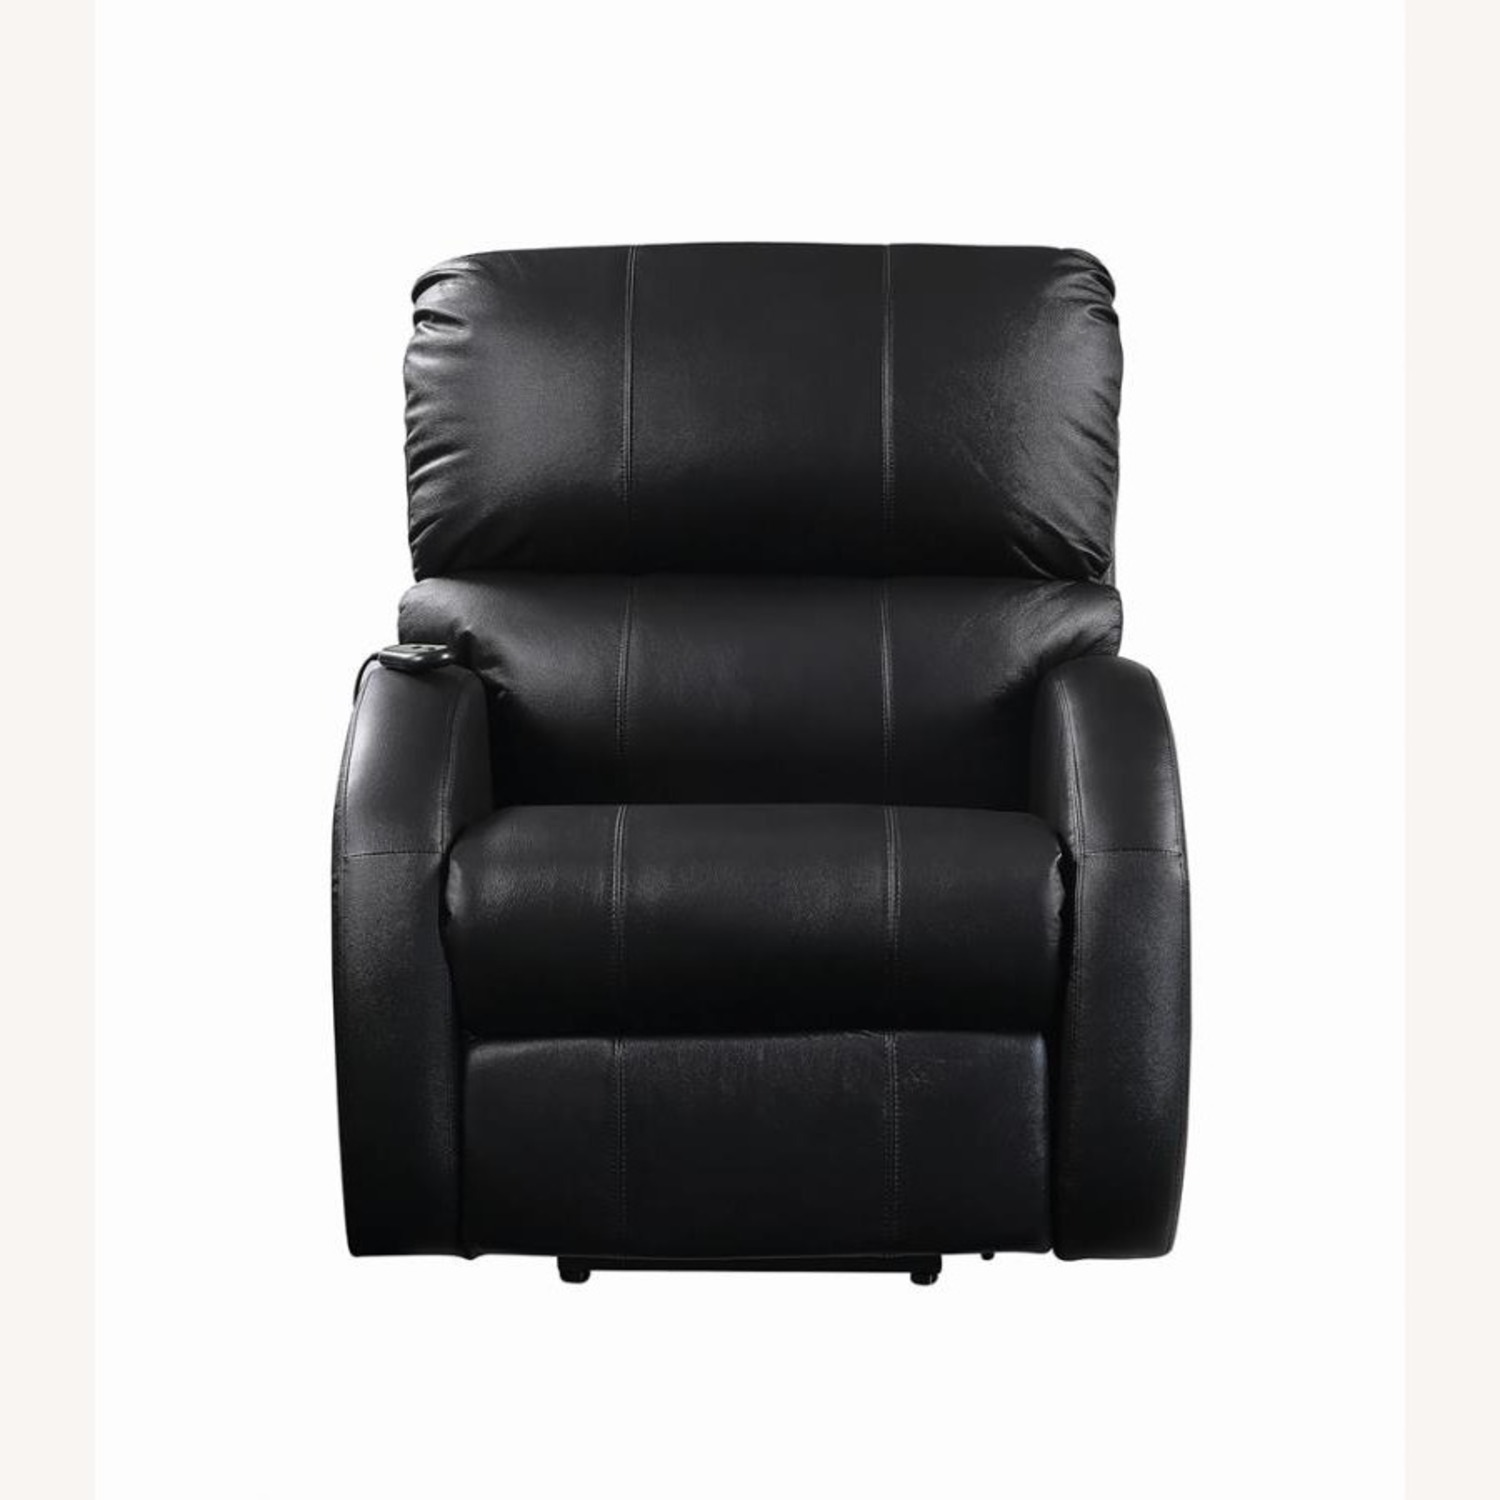 Power Lift Recliner In Black Top Grain Leather - image-4